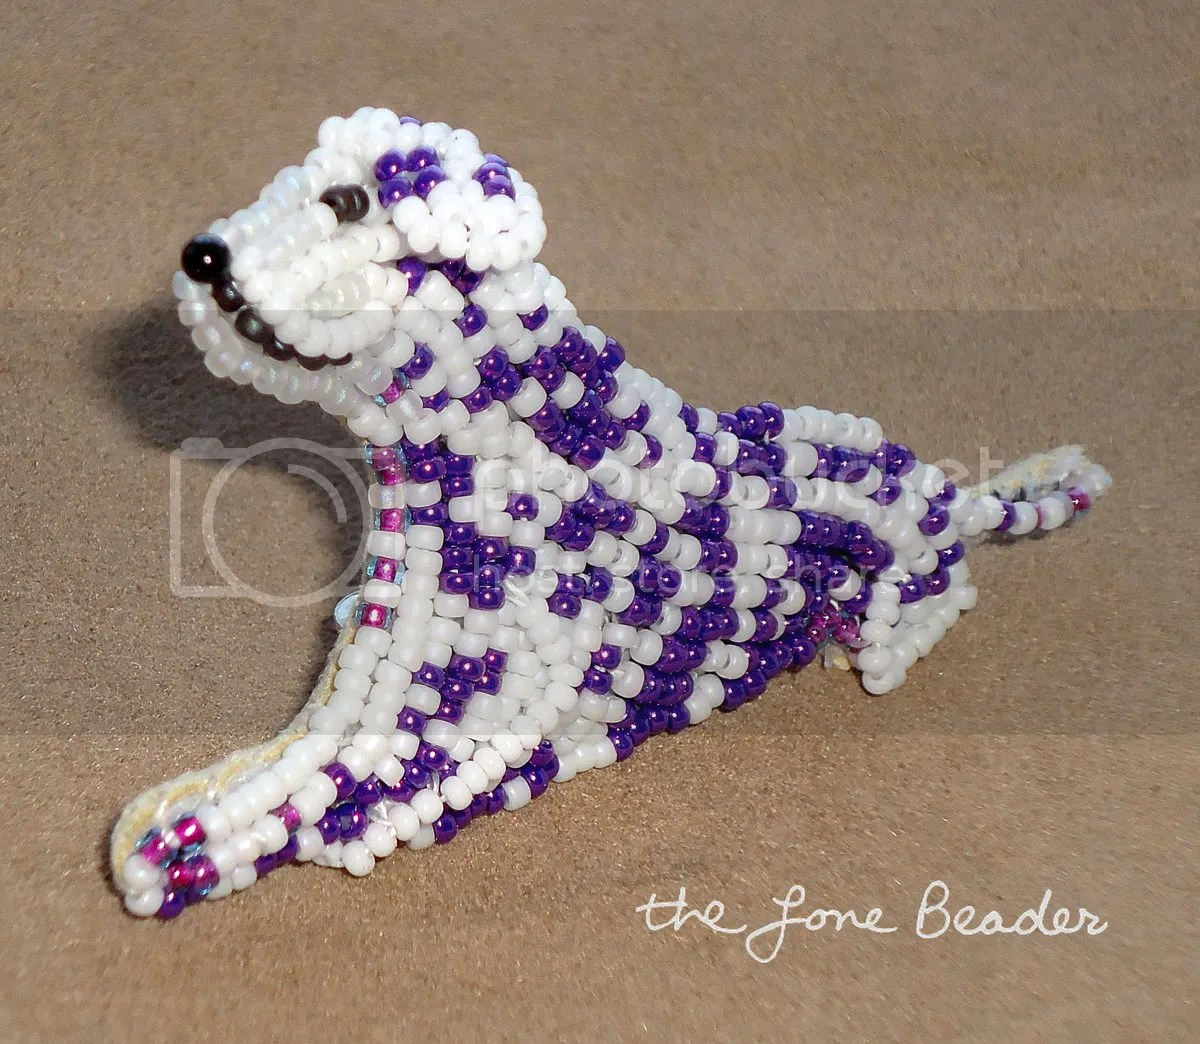 bead embroidery beadwork pooch dog jewelry for humans etsy custom brooch pendant akc